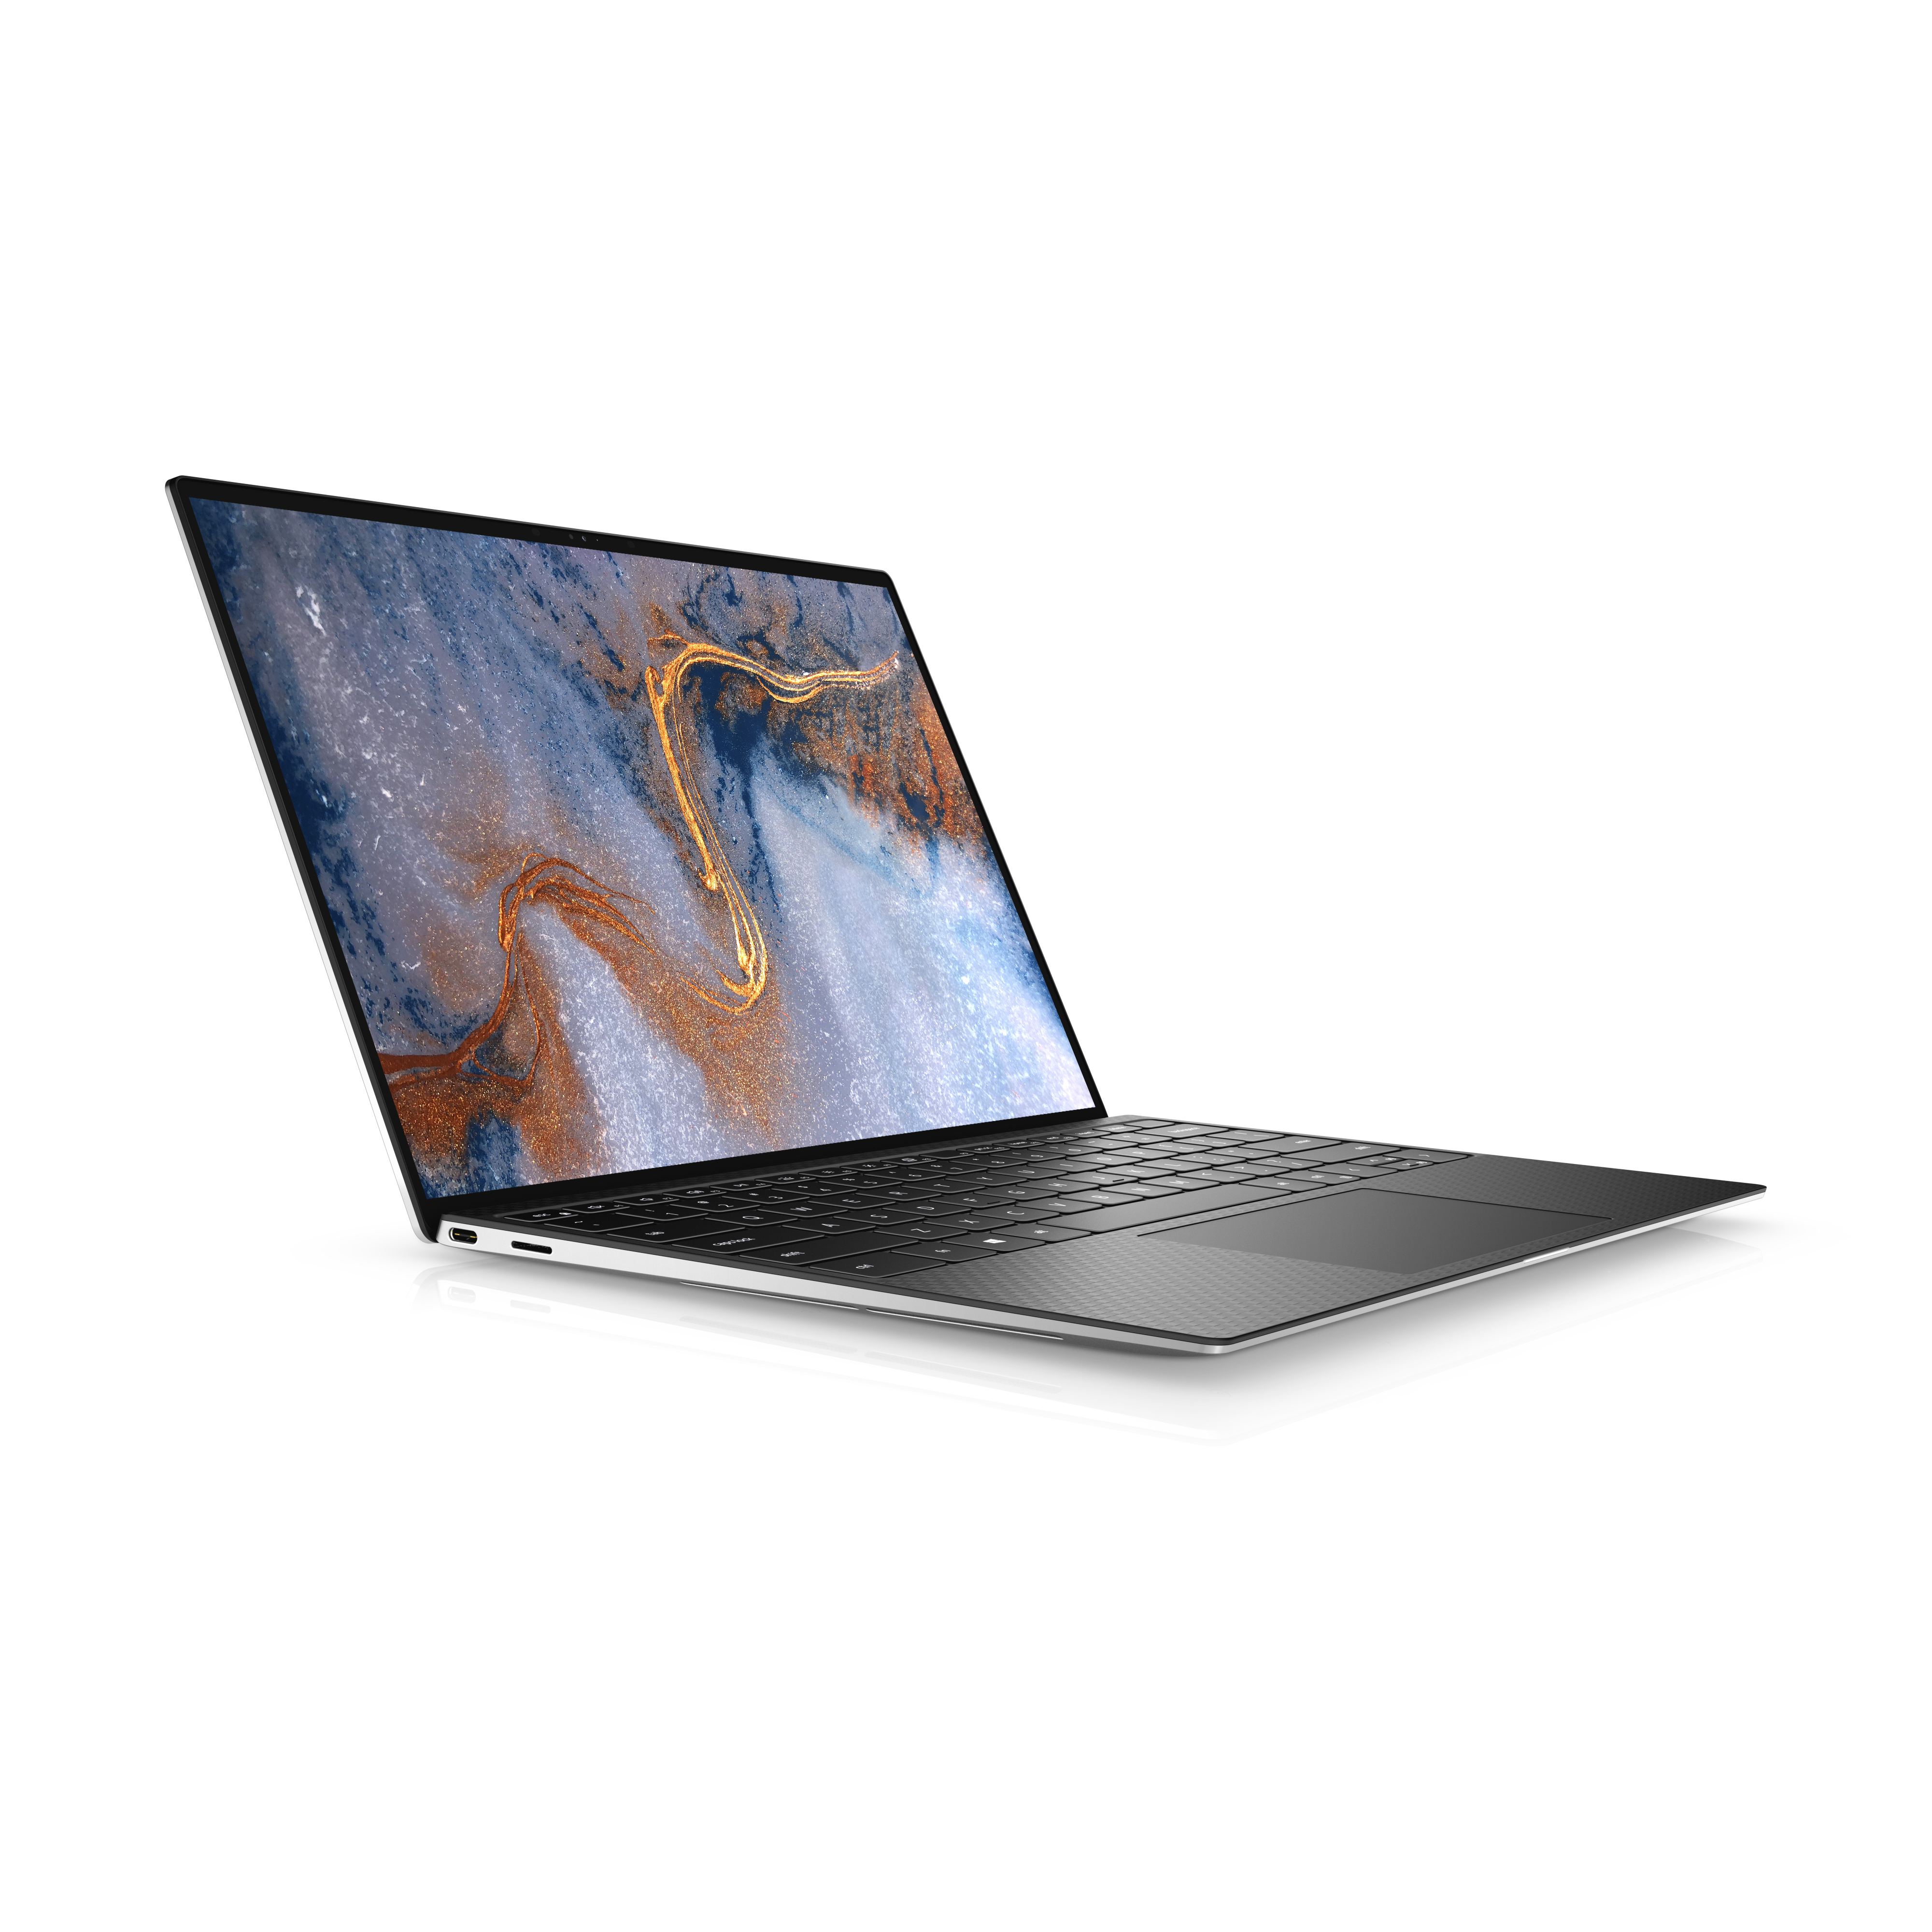 The Dell XPS 13 seen from the left side on a white background. The screen displays a blue, white, and orange marbled pattern.